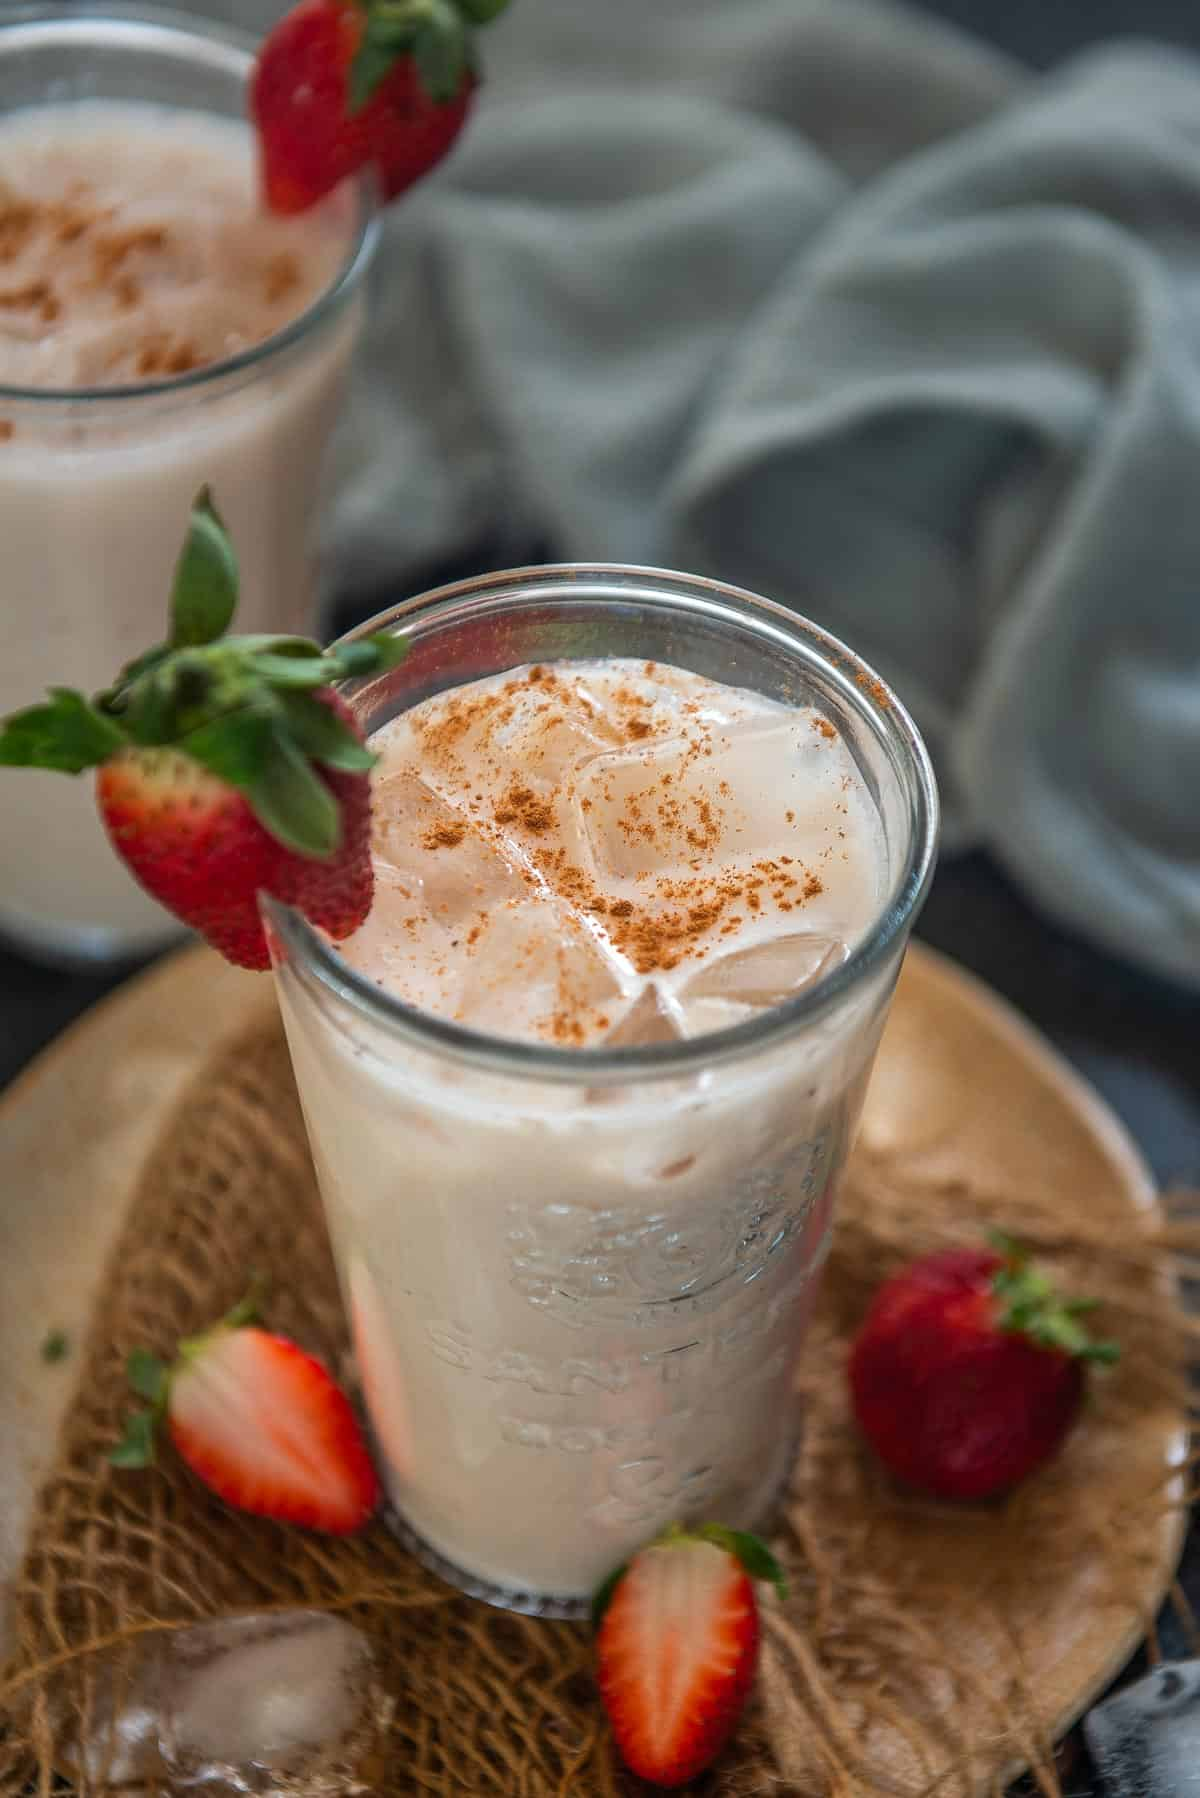 Strawberry horchata served in a glass.